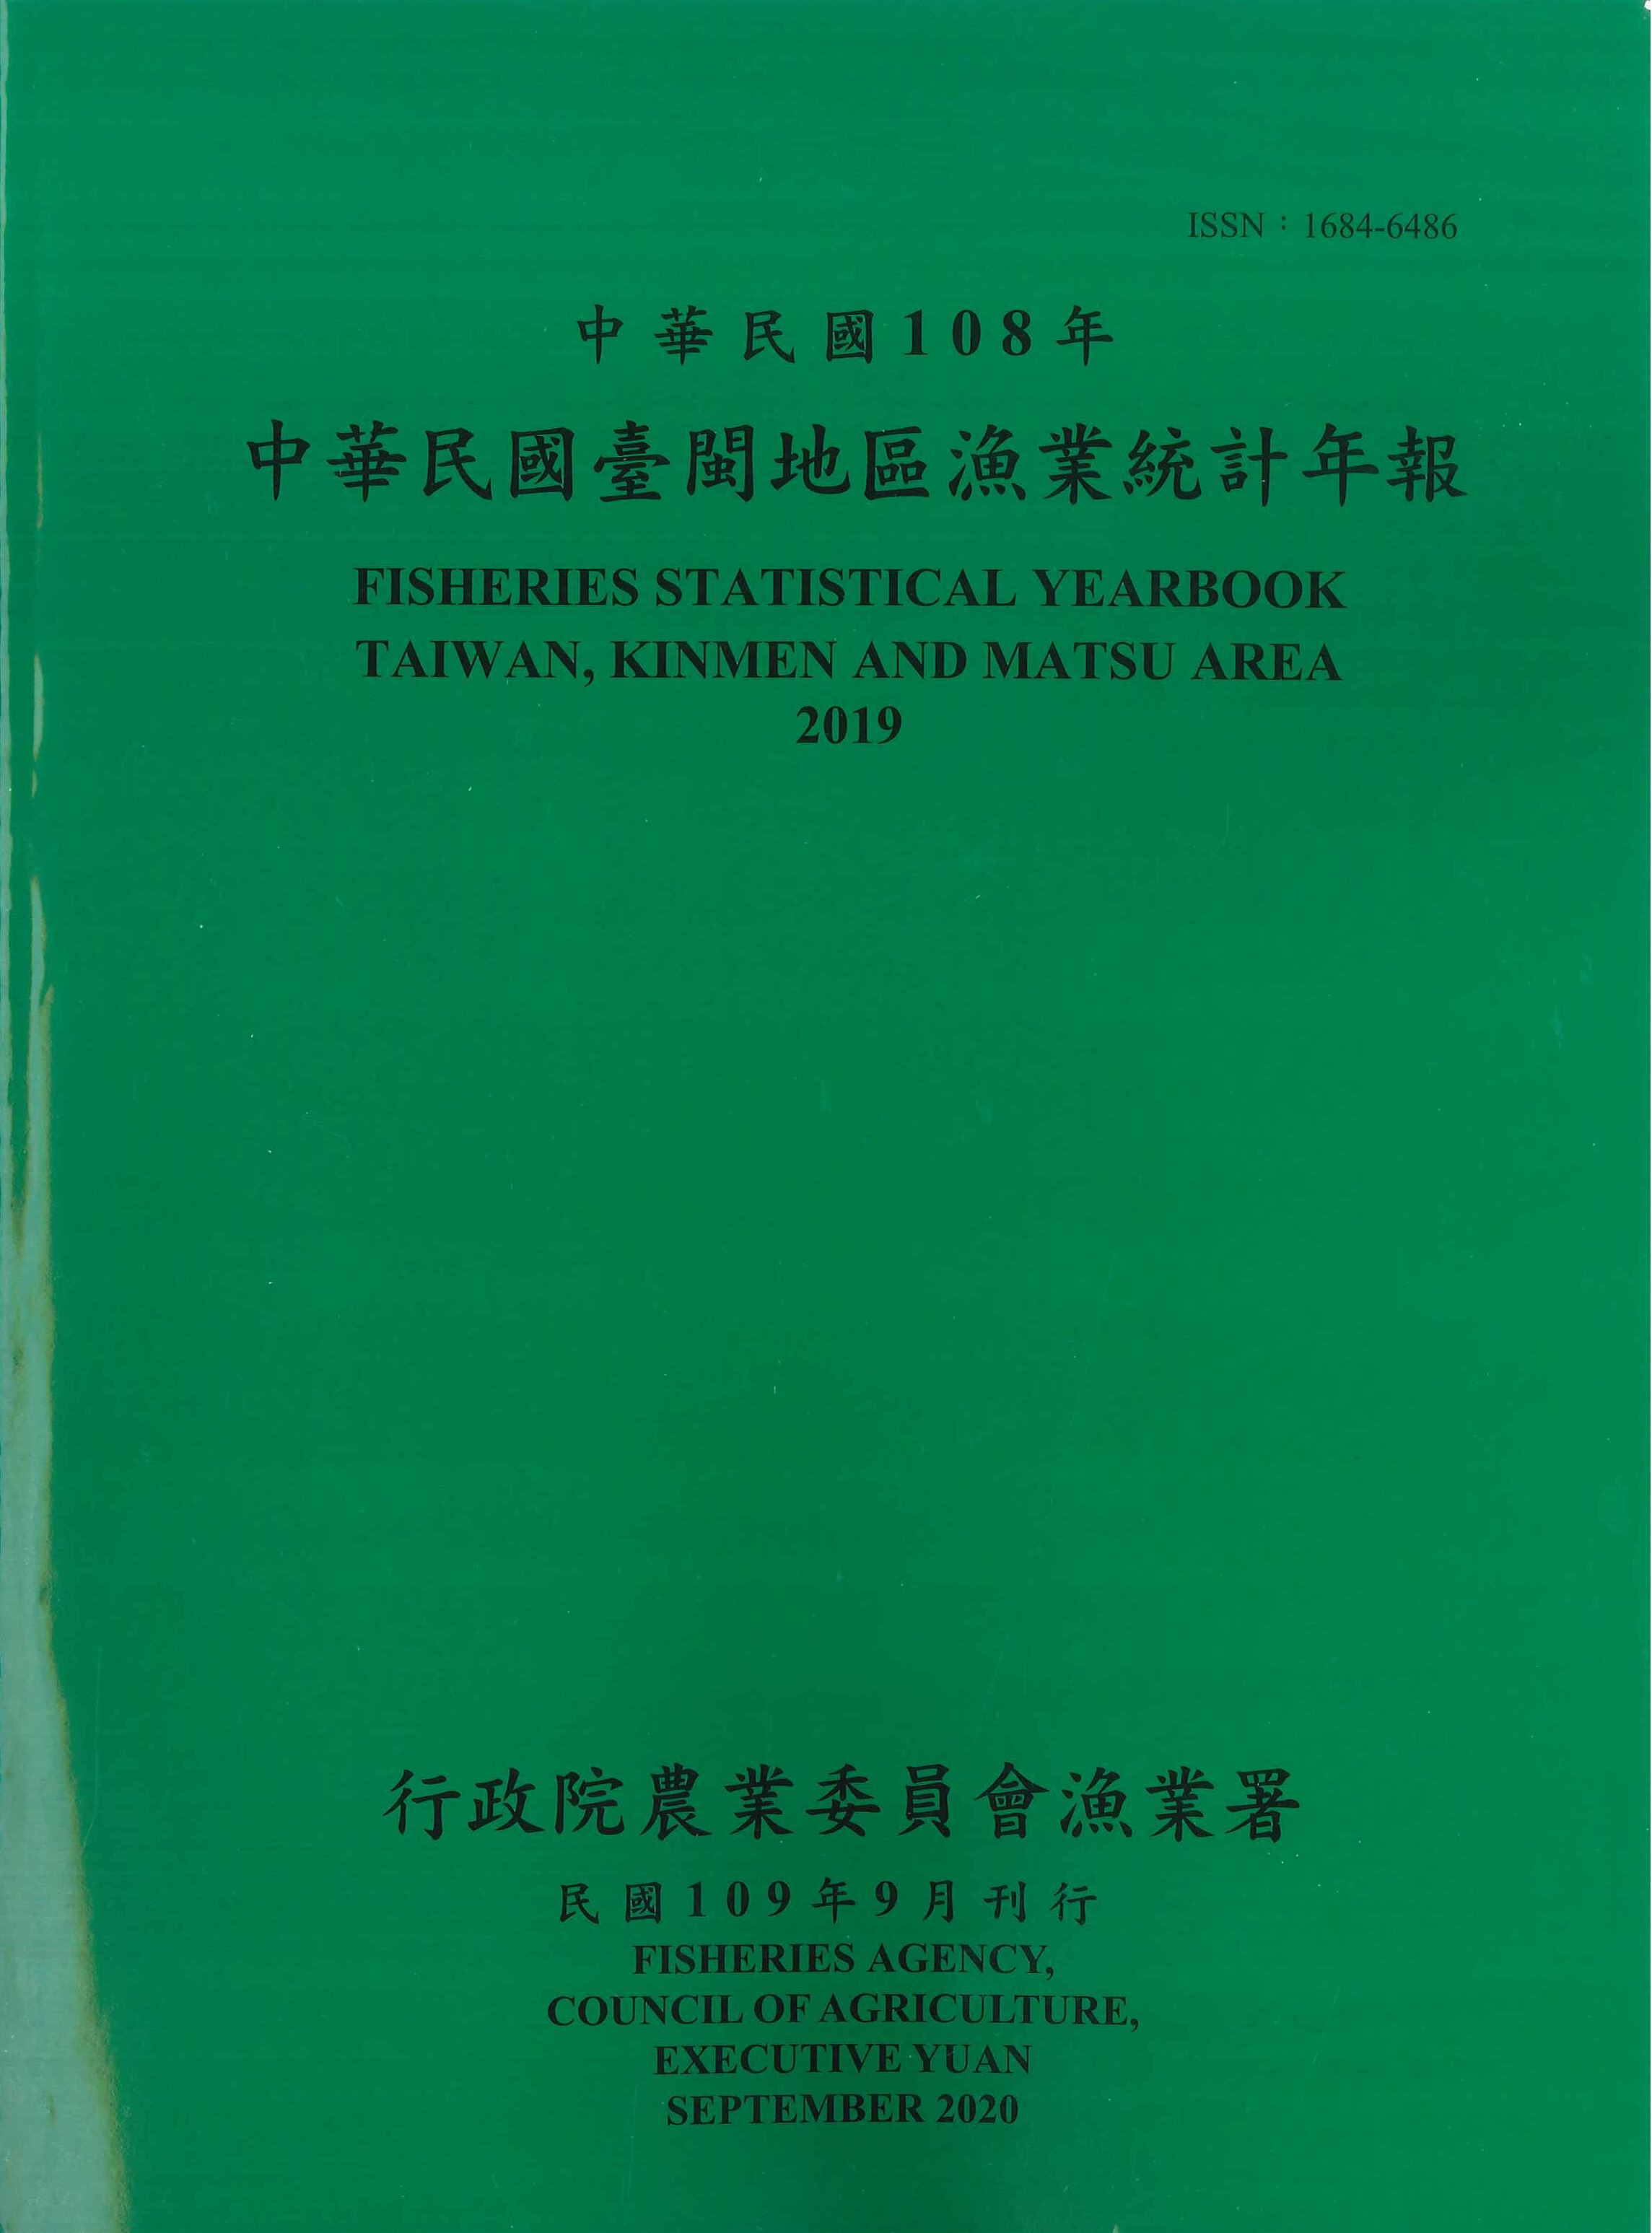 中華民國臺閩地區漁業統計年報=Fisheries statistical yearbook, Taiwan, Kinmen and Matsu Area